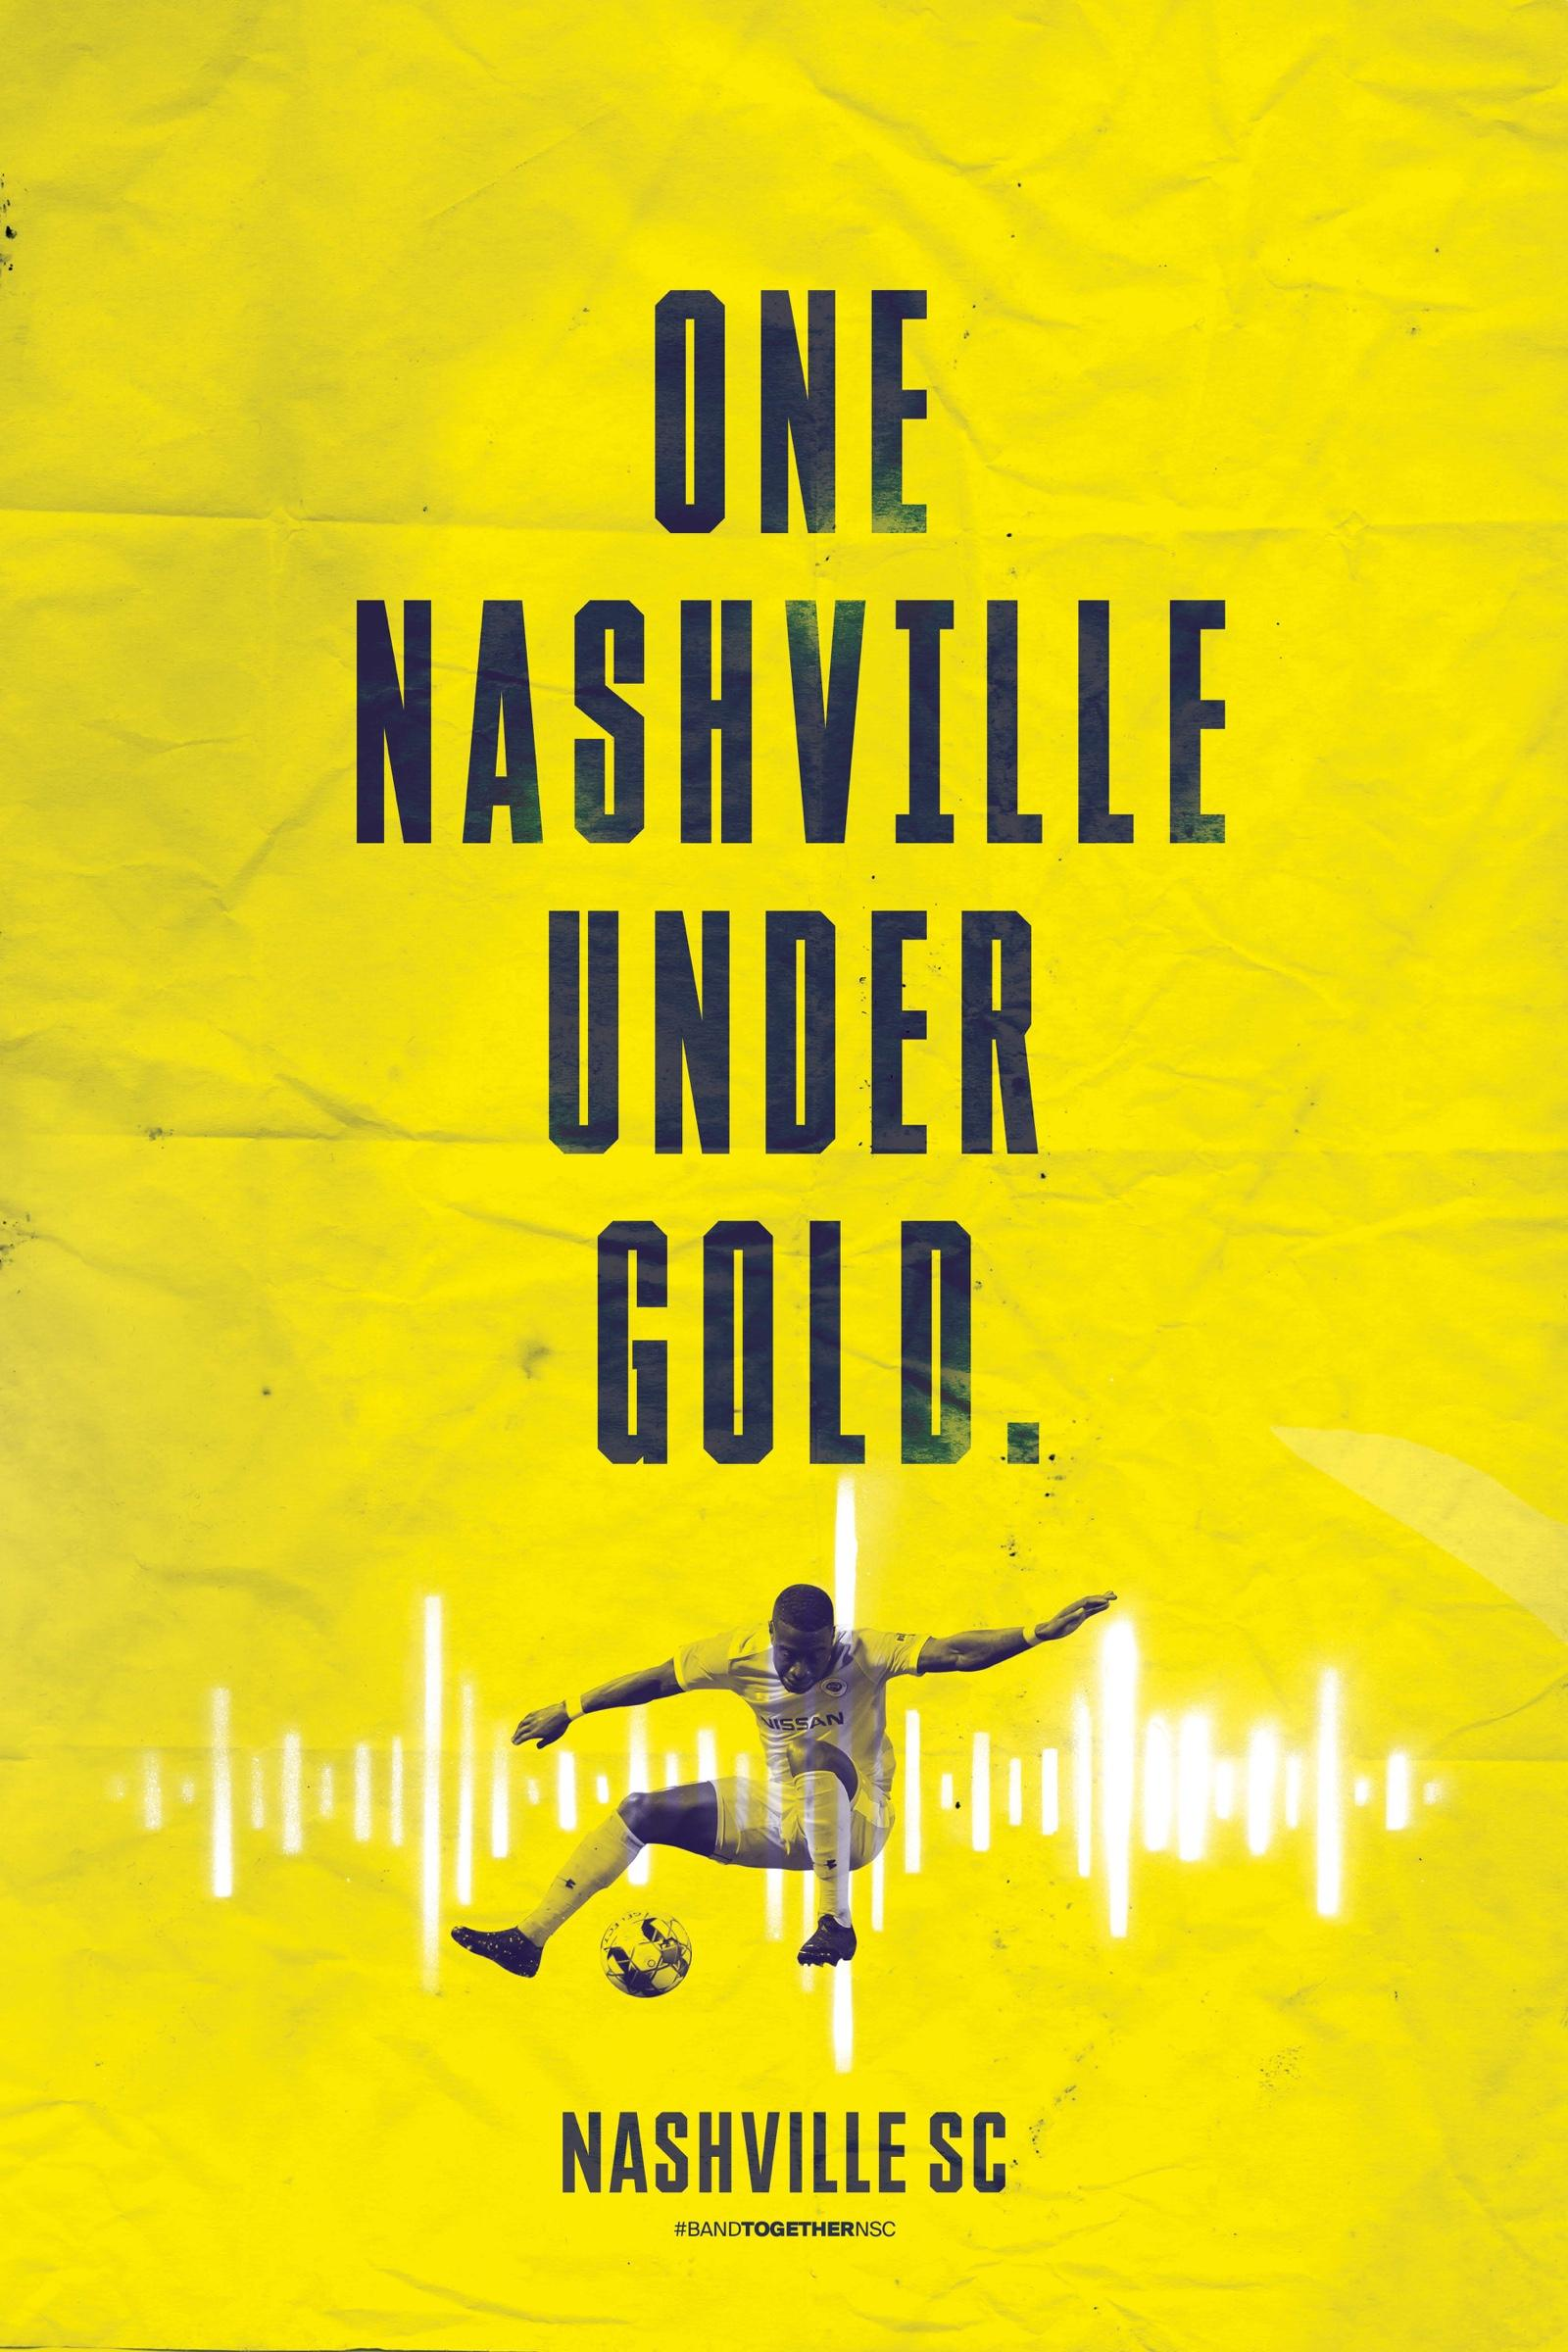 Nashville Soccer Club Outdoor Ad - Posters